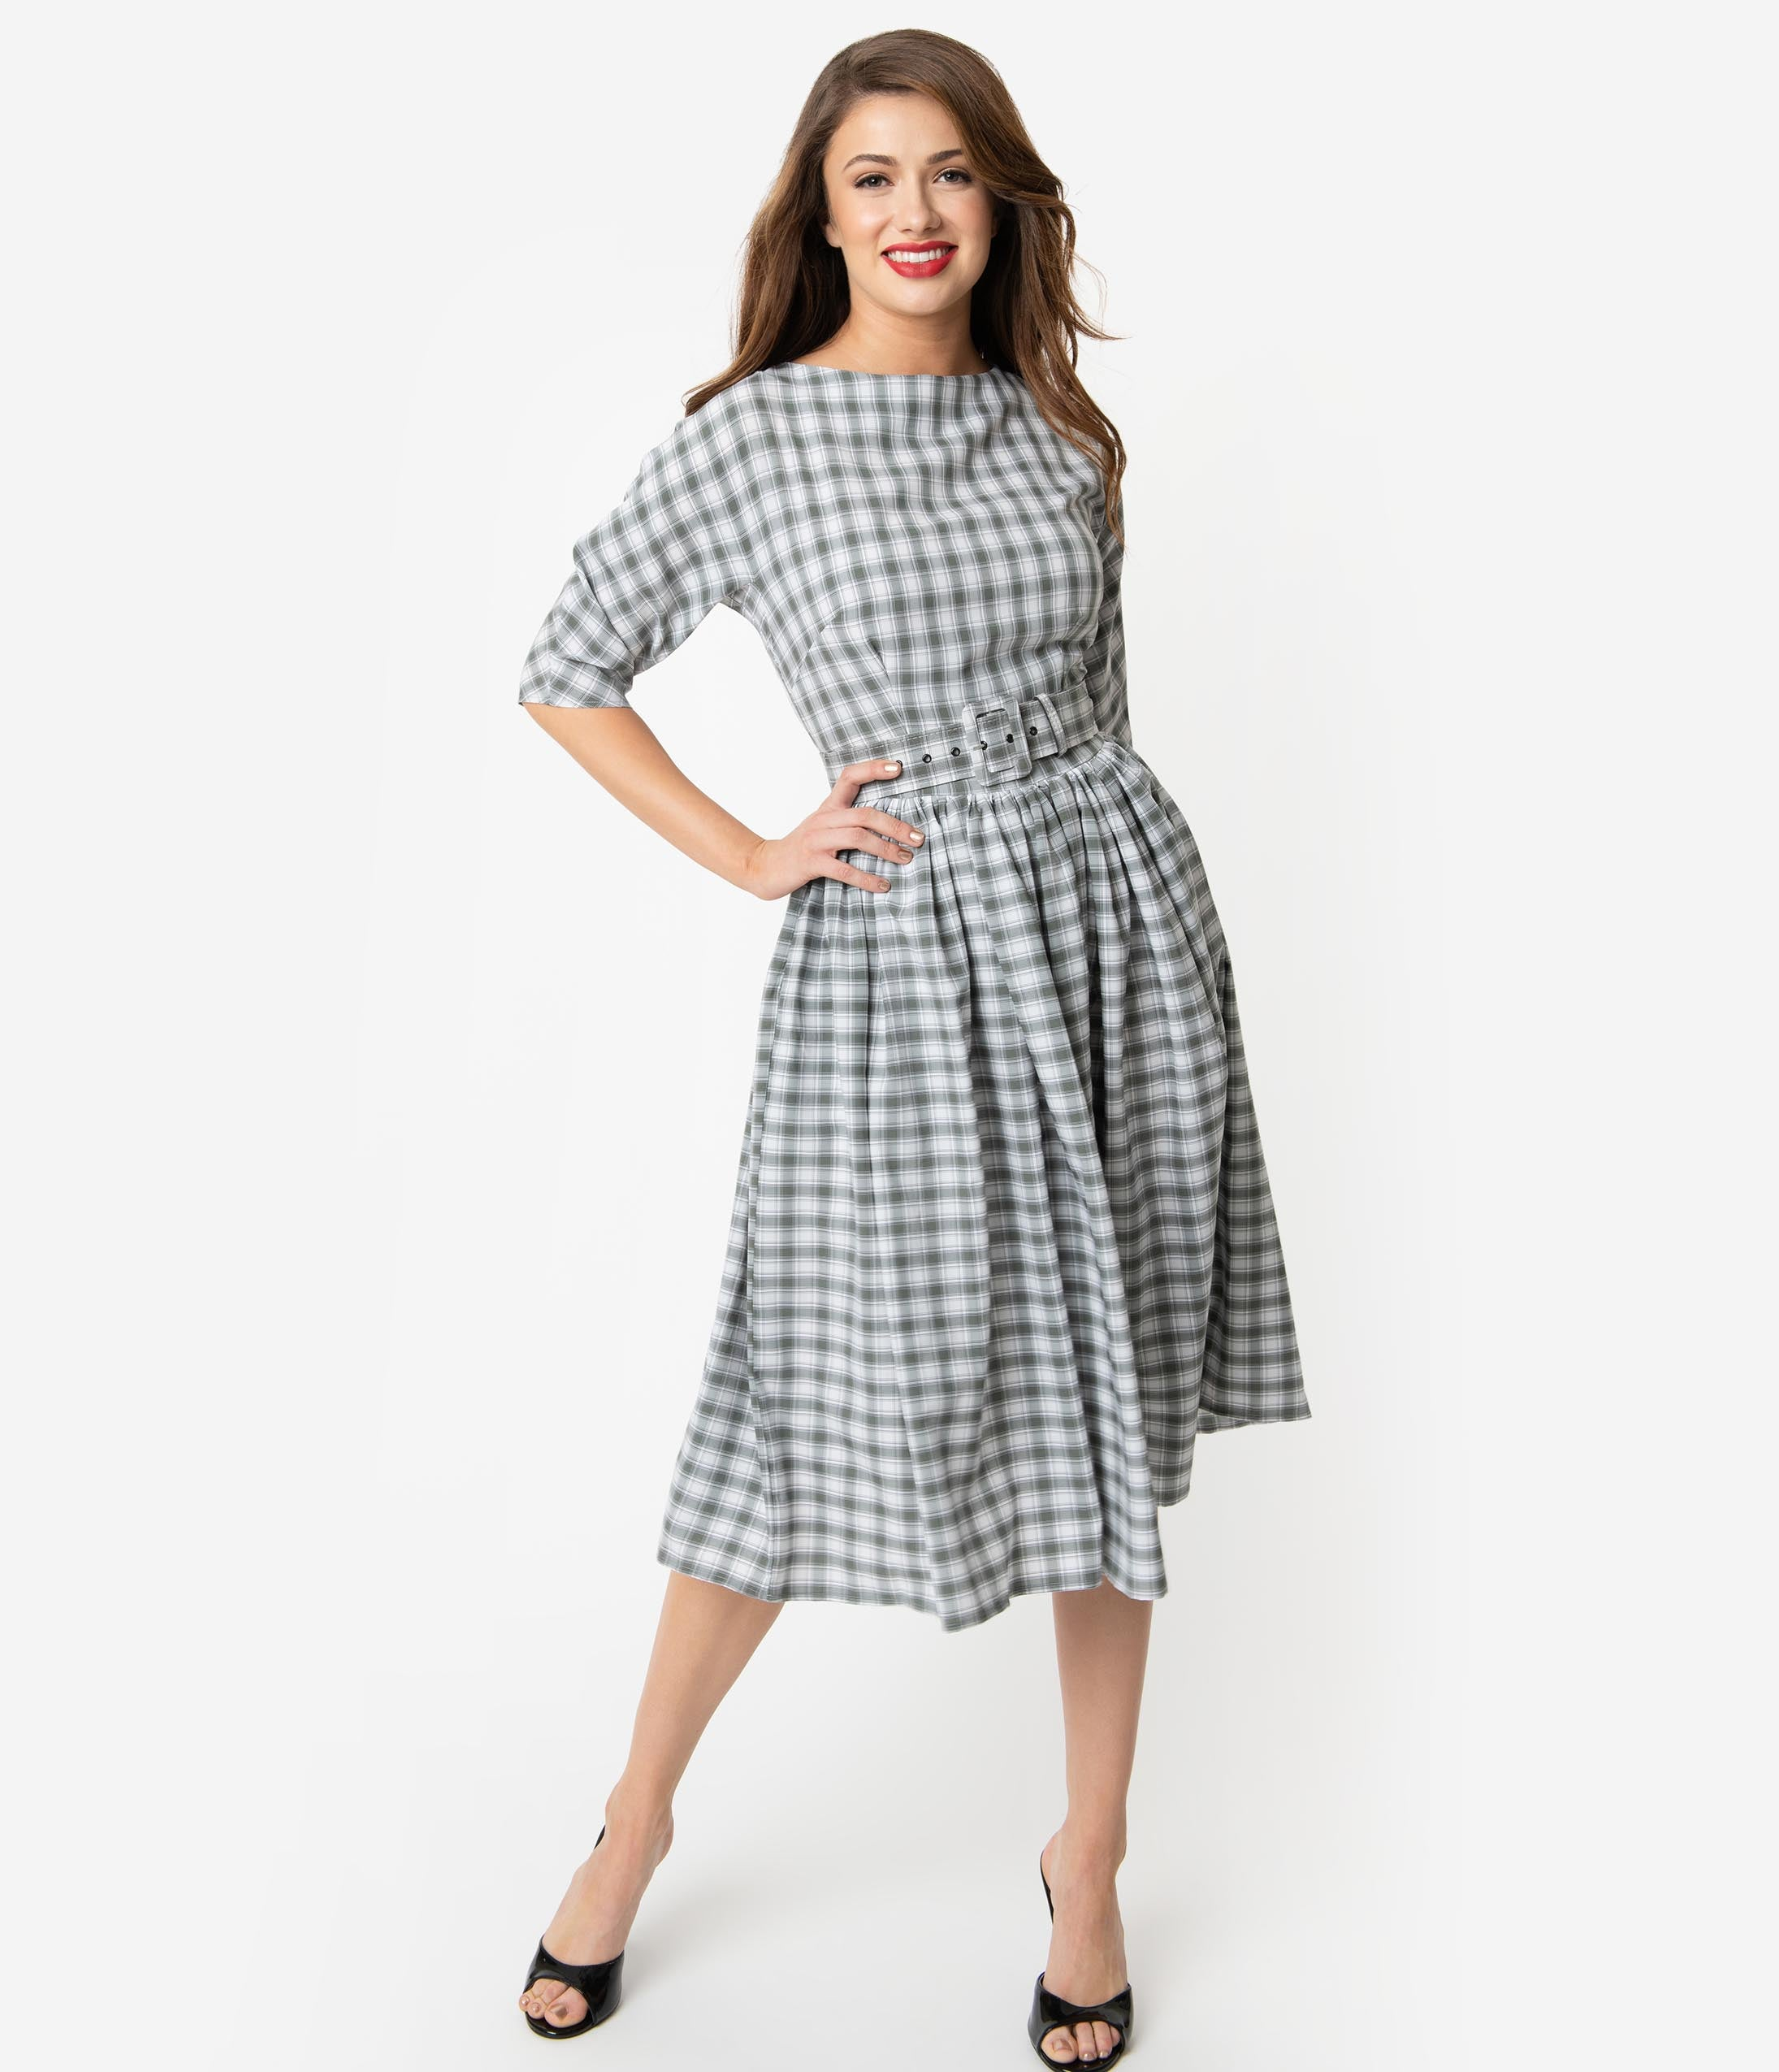 Agent Peggy Carter Costume, Dress, Hats Unique Vintage 1940S Style Grey  White Plaid Sleeved Sally Swing Dress $52.00 AT vintagedancer.com